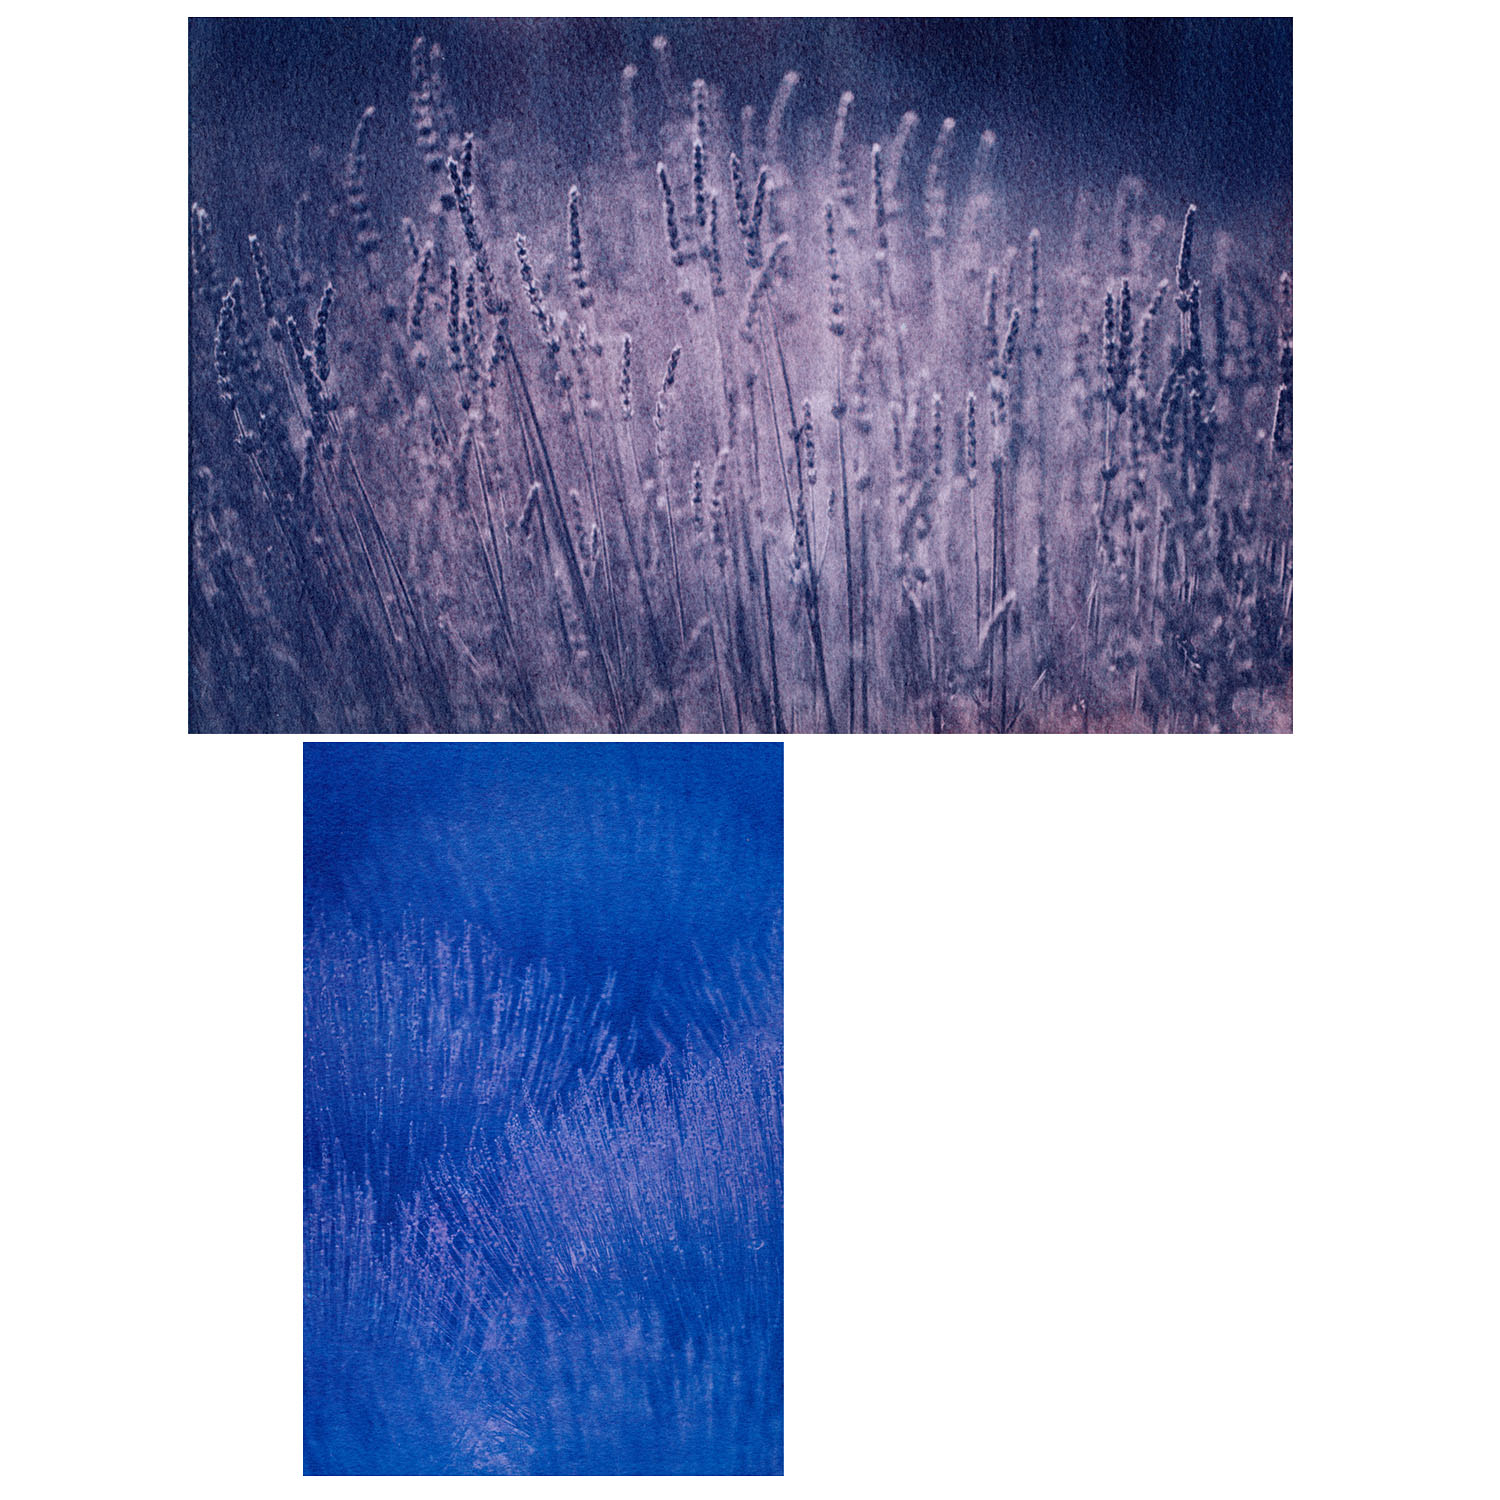 French lavender - 3 colour gum bichromate prints